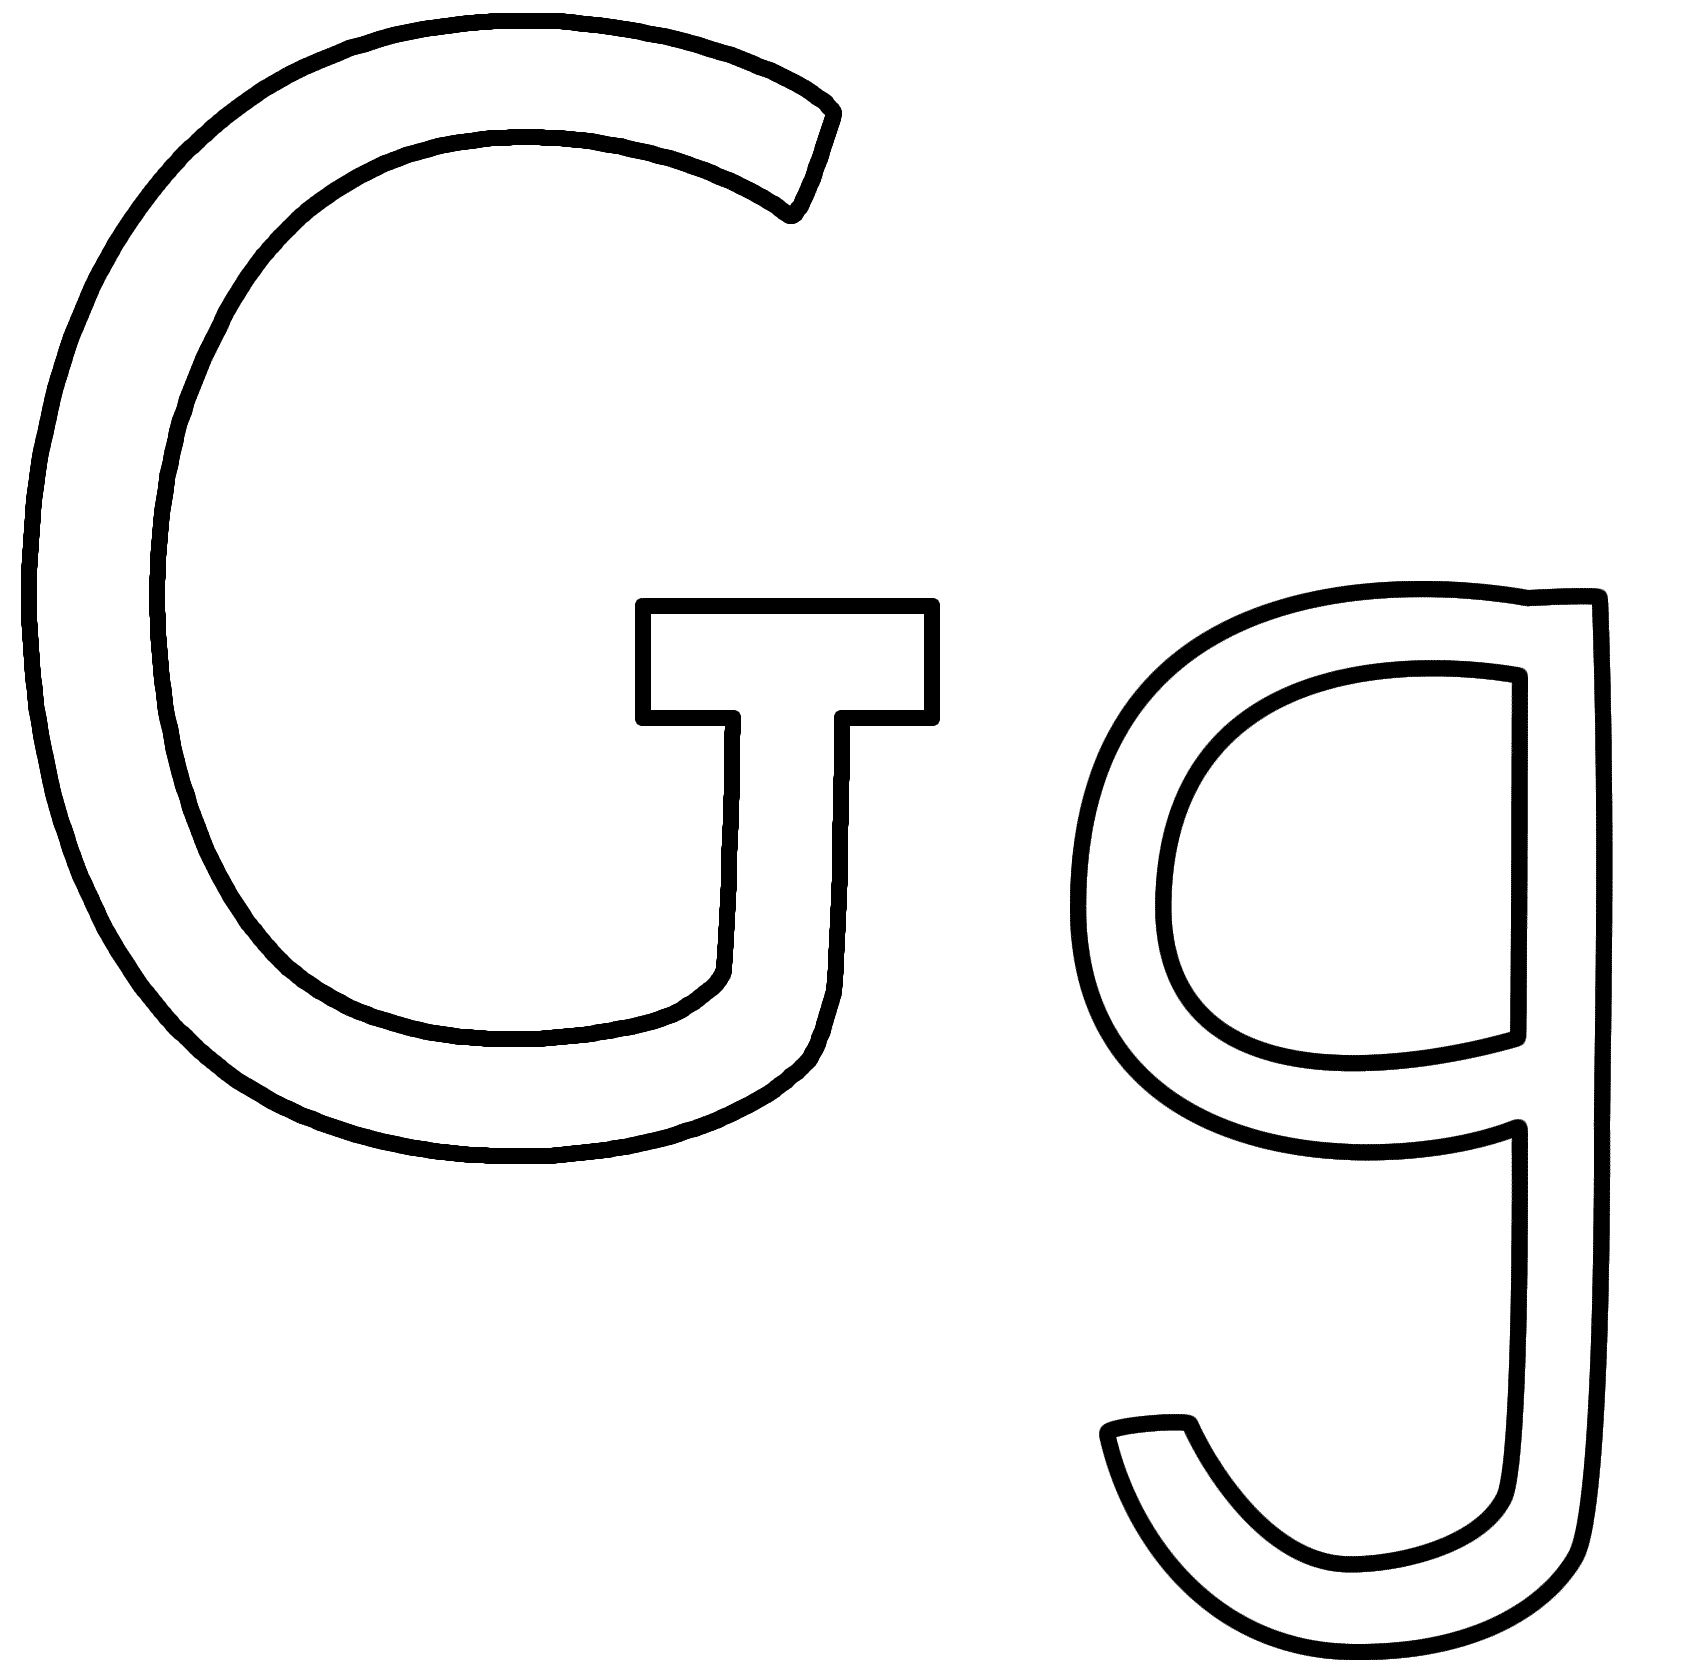 g is for girl coloring page g dr odd page girl is coloring g for